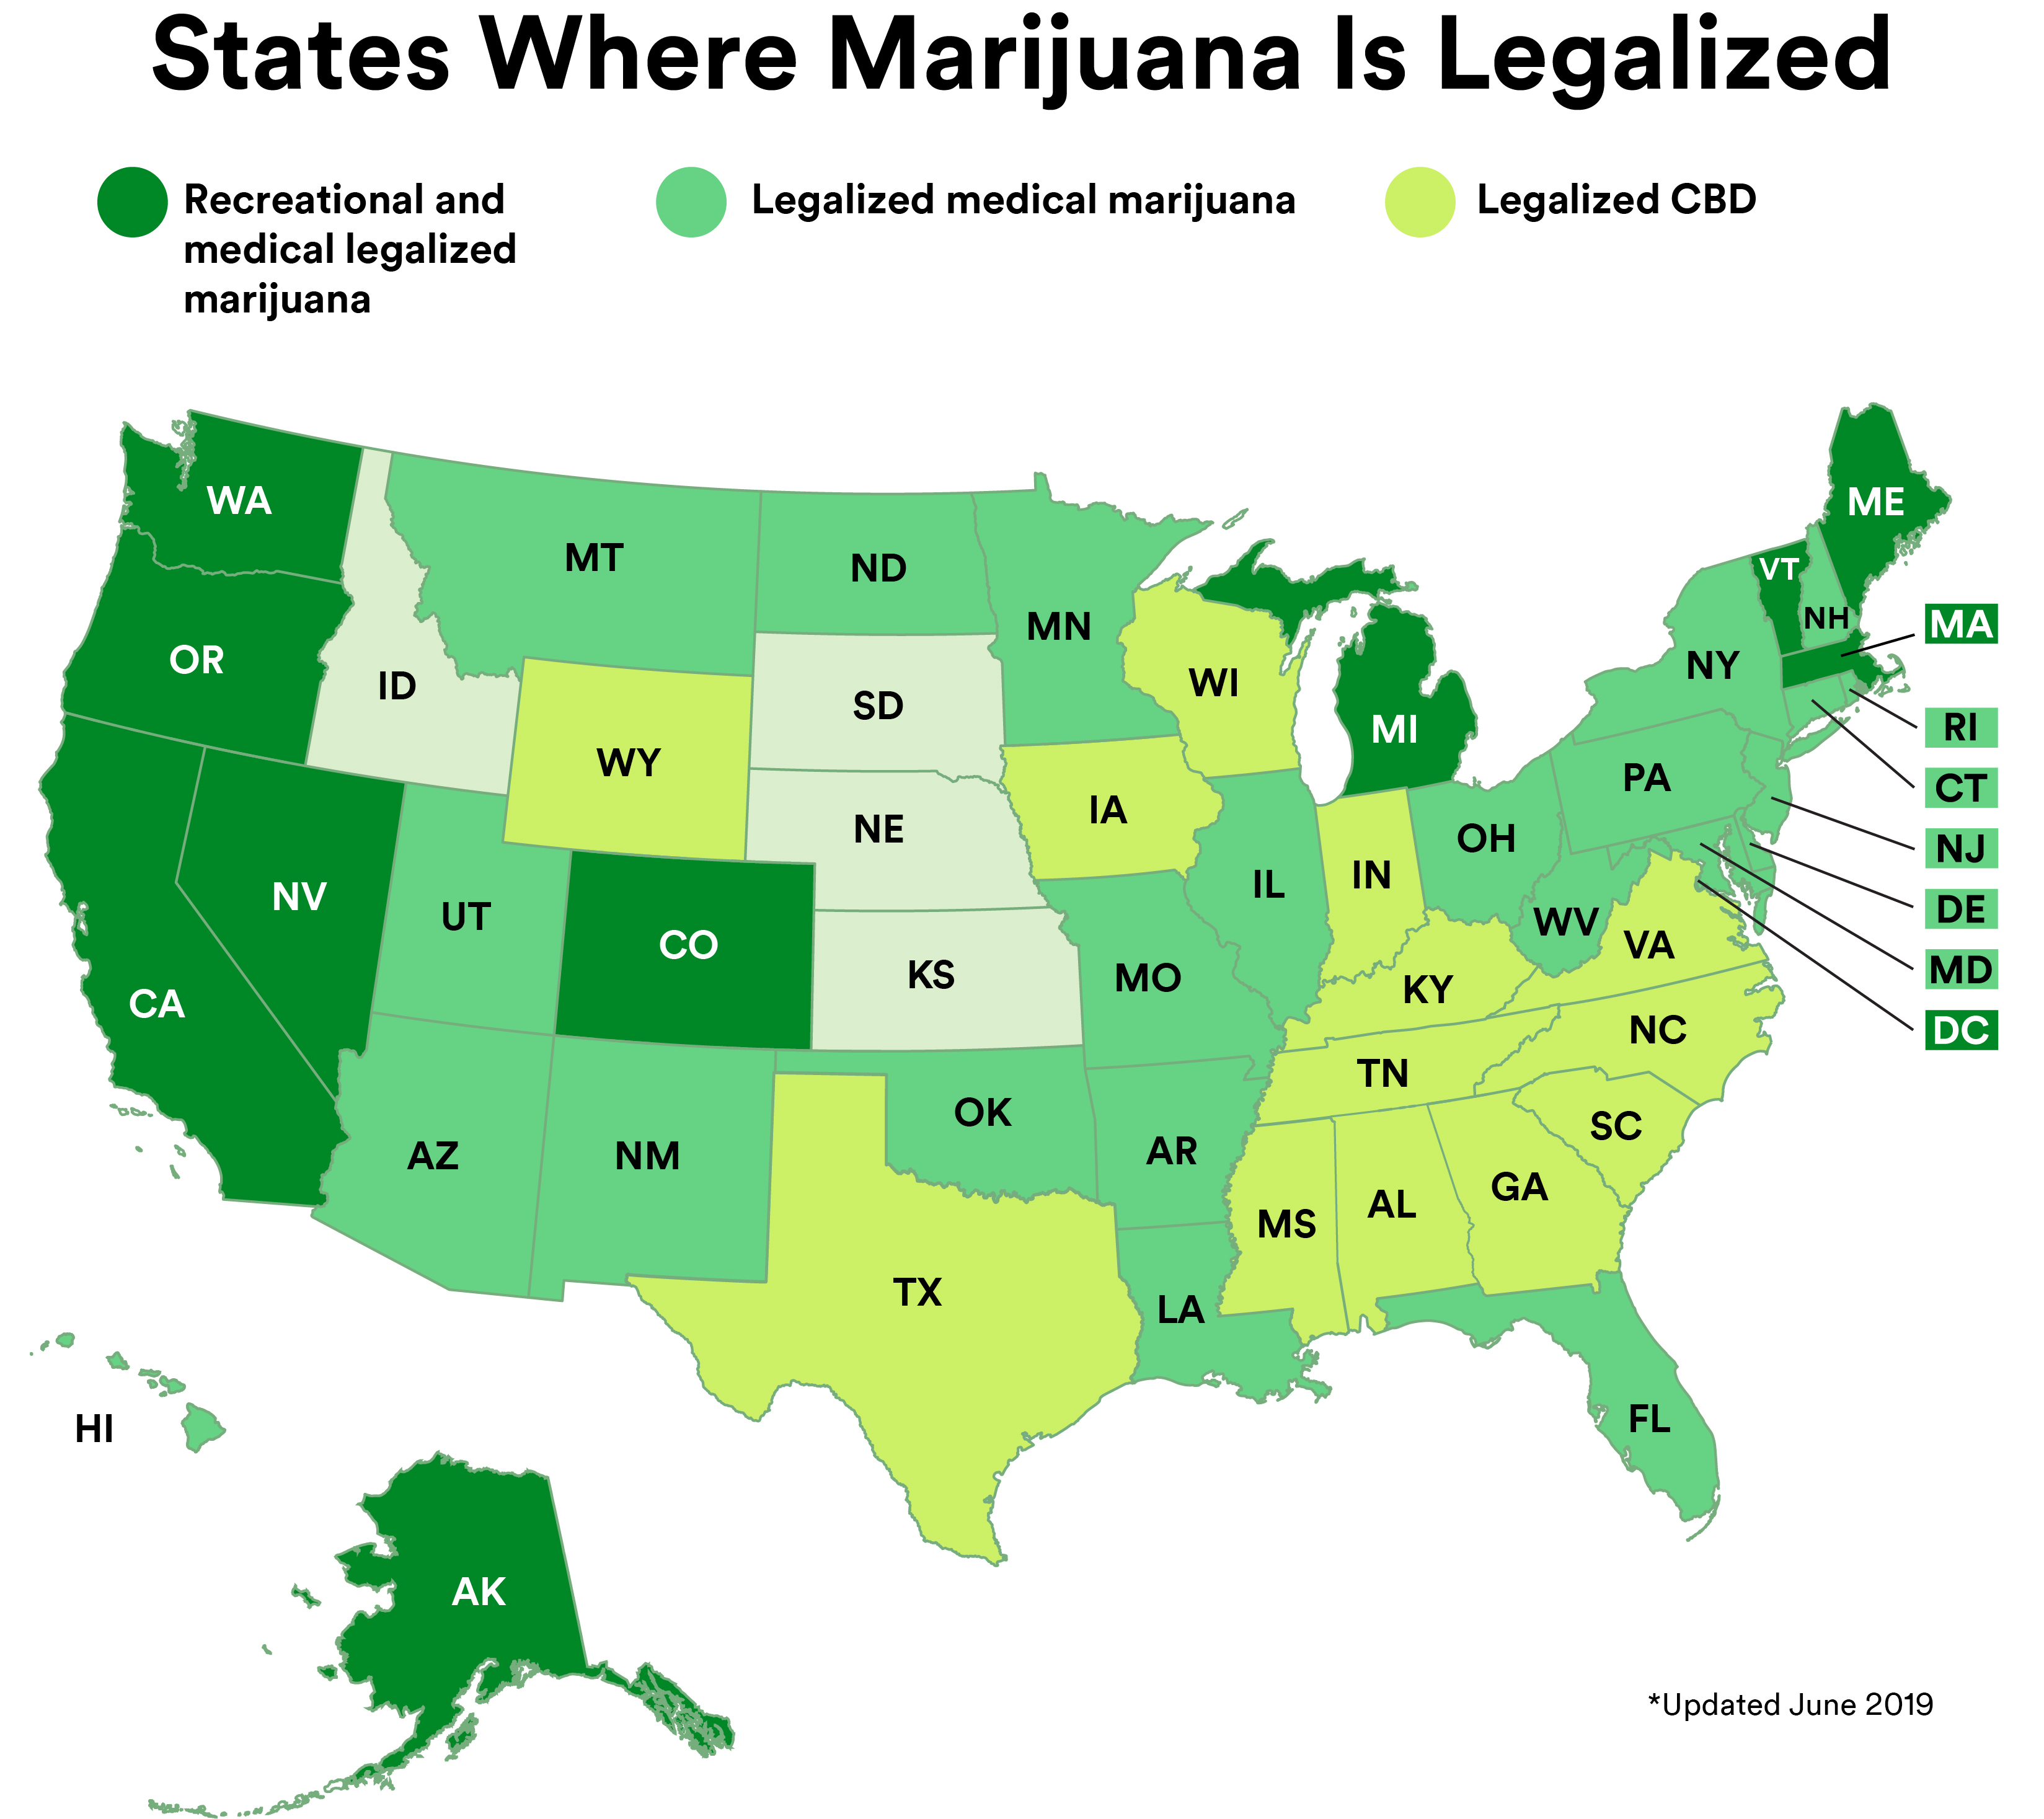 map showing where medical marijuana is legal and to what extent